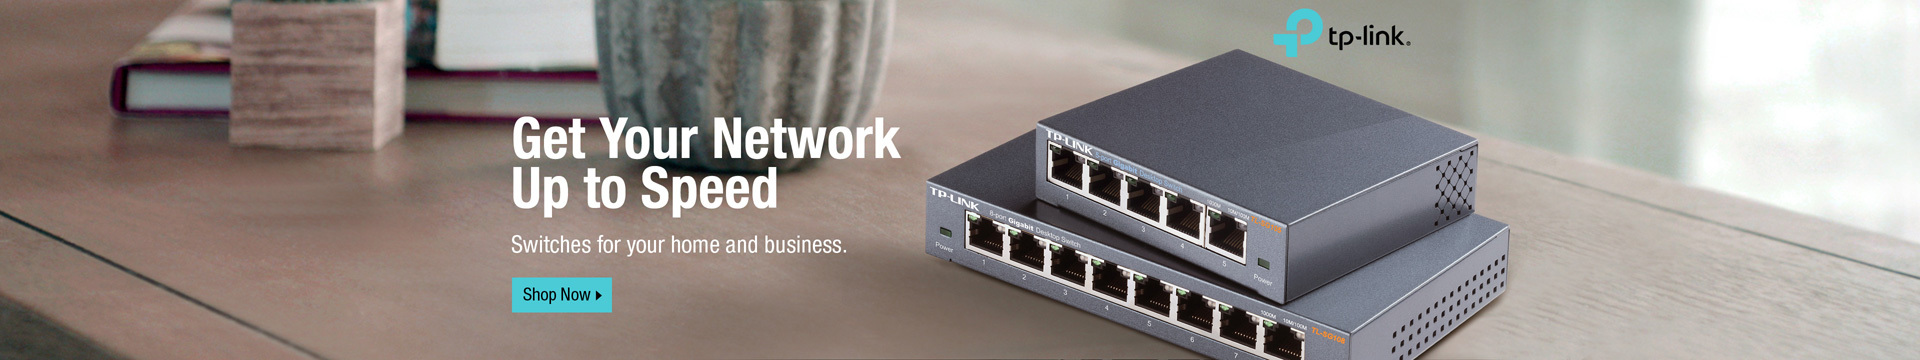 Wired Routers, Network Switches and Modems - Newegg.com